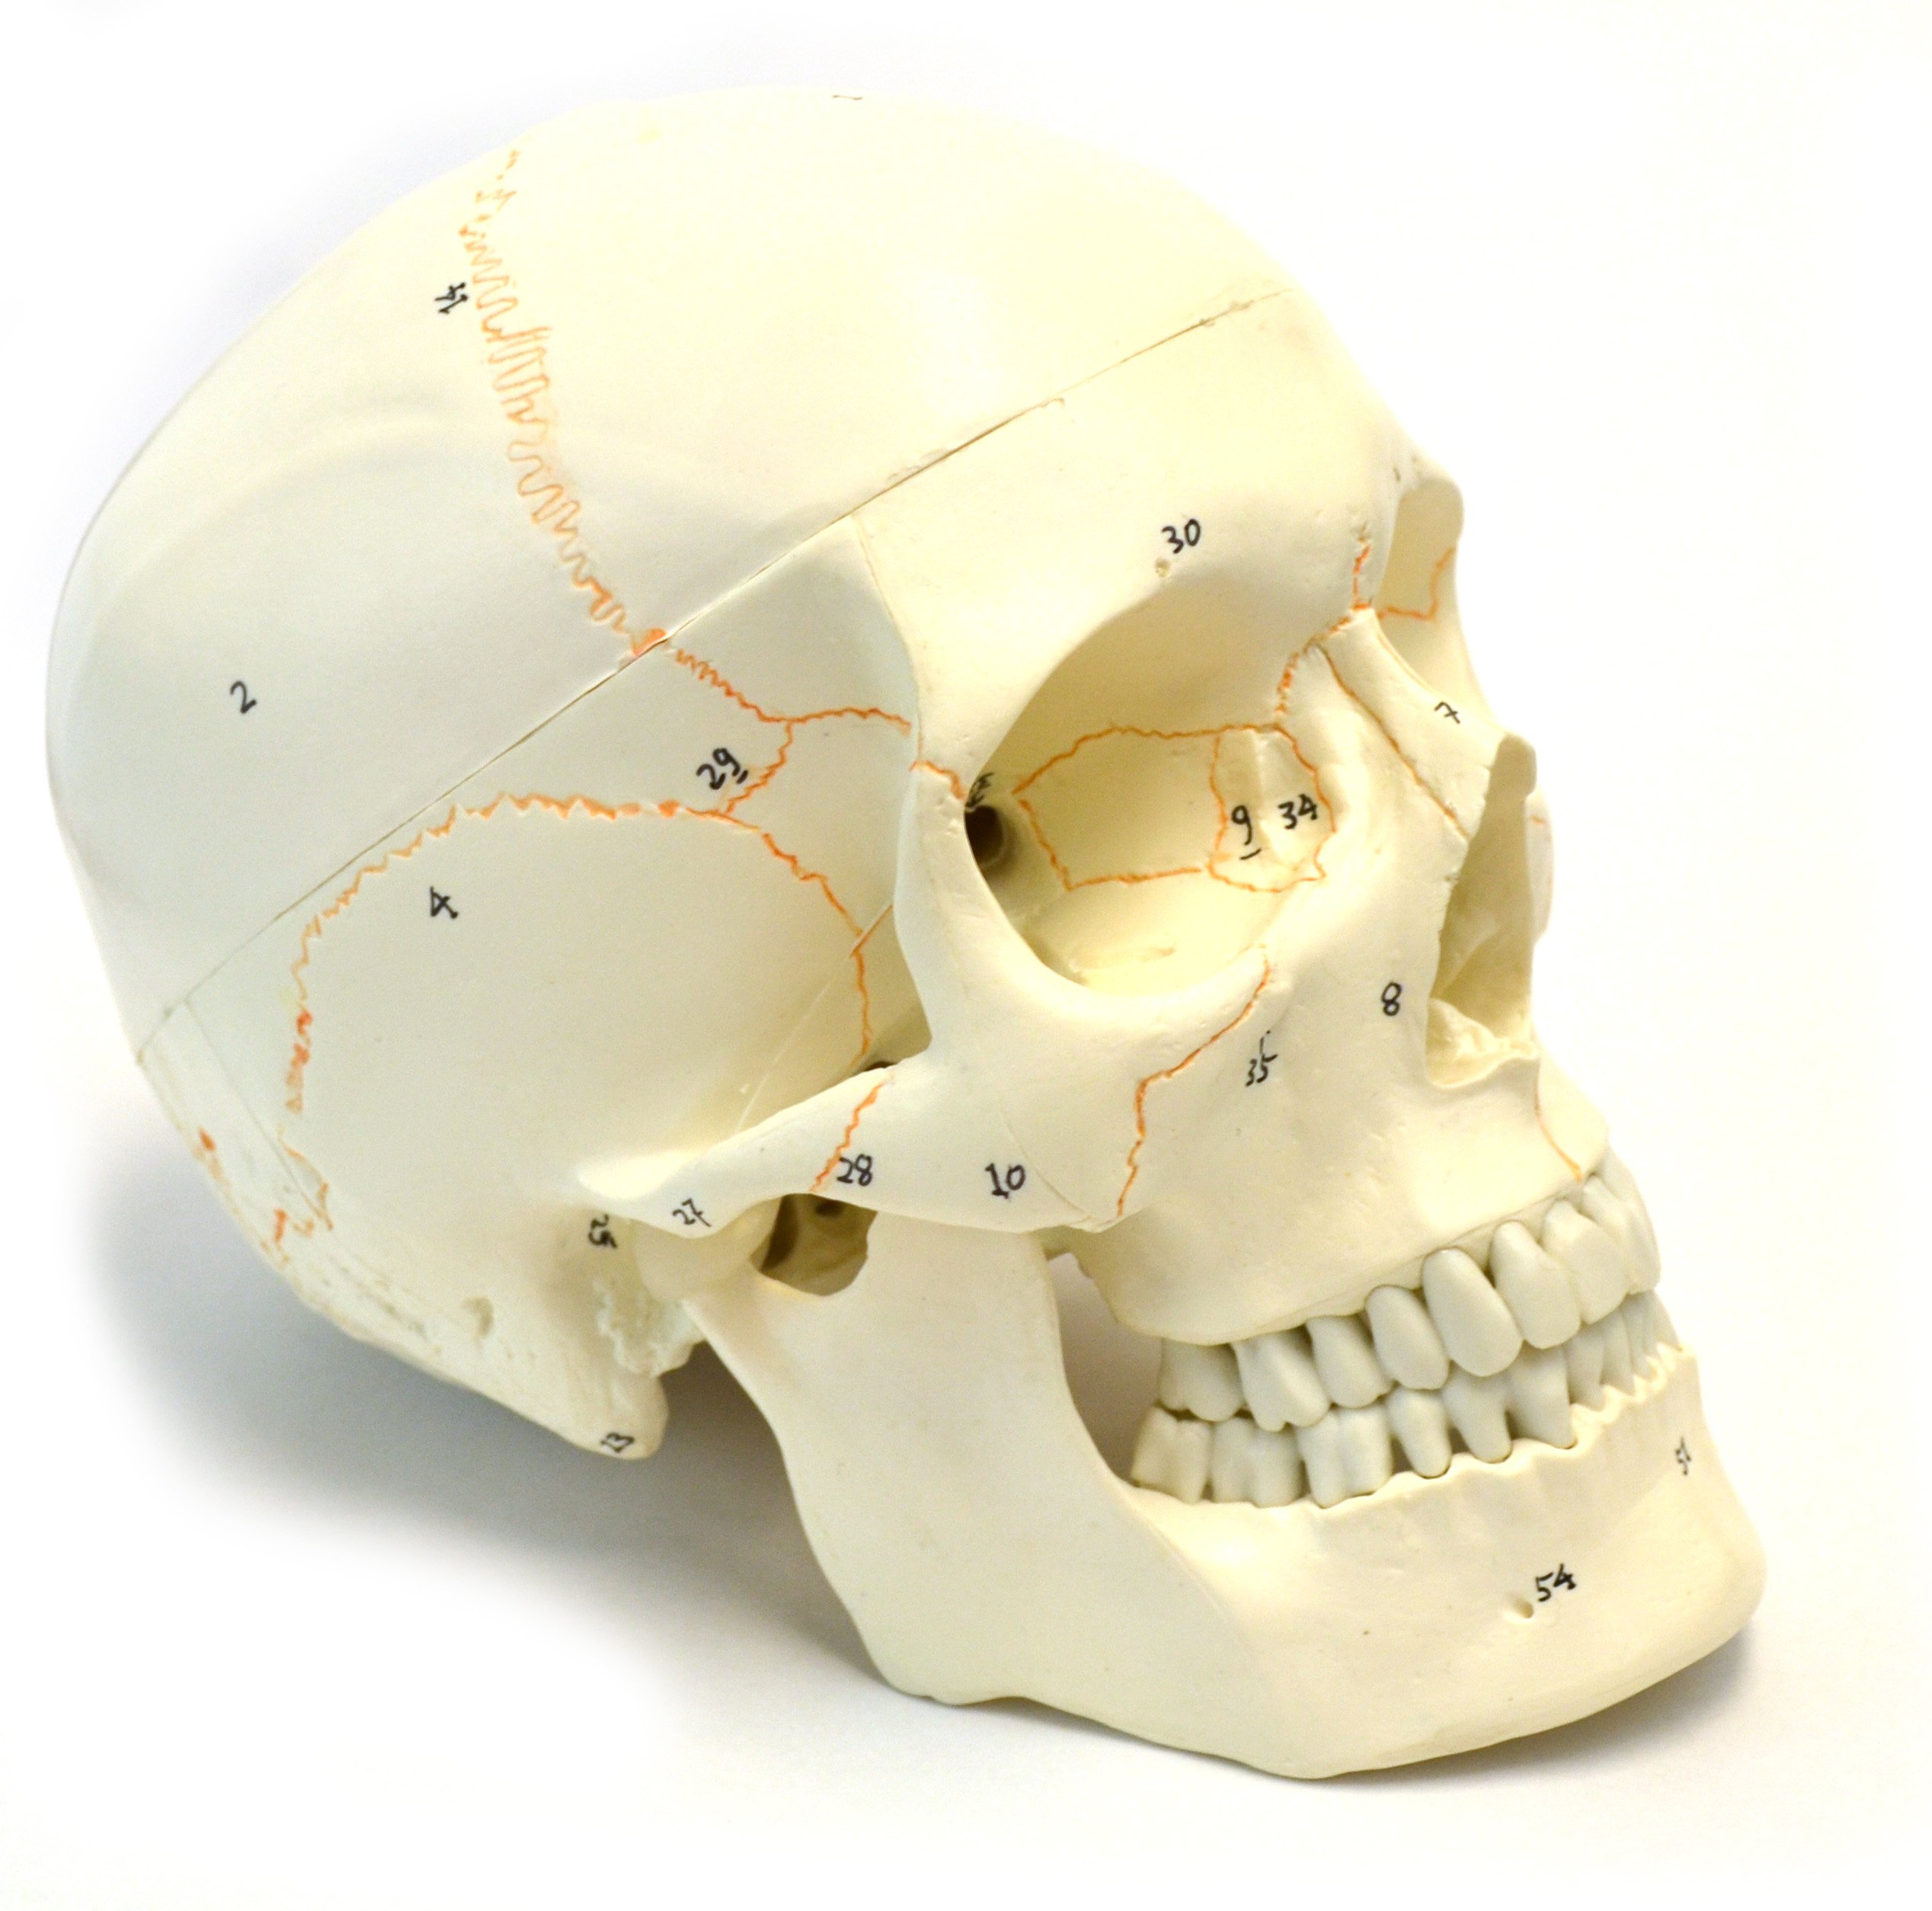 Numbered Human Adult Skull Anatomical Model, Medical Quality, Life Sized (9'' Height) - 3 Part - Removable Skull Cap - Shows Most Major Foramen, Fossa, and Canals - Includes Full Set of Teeth